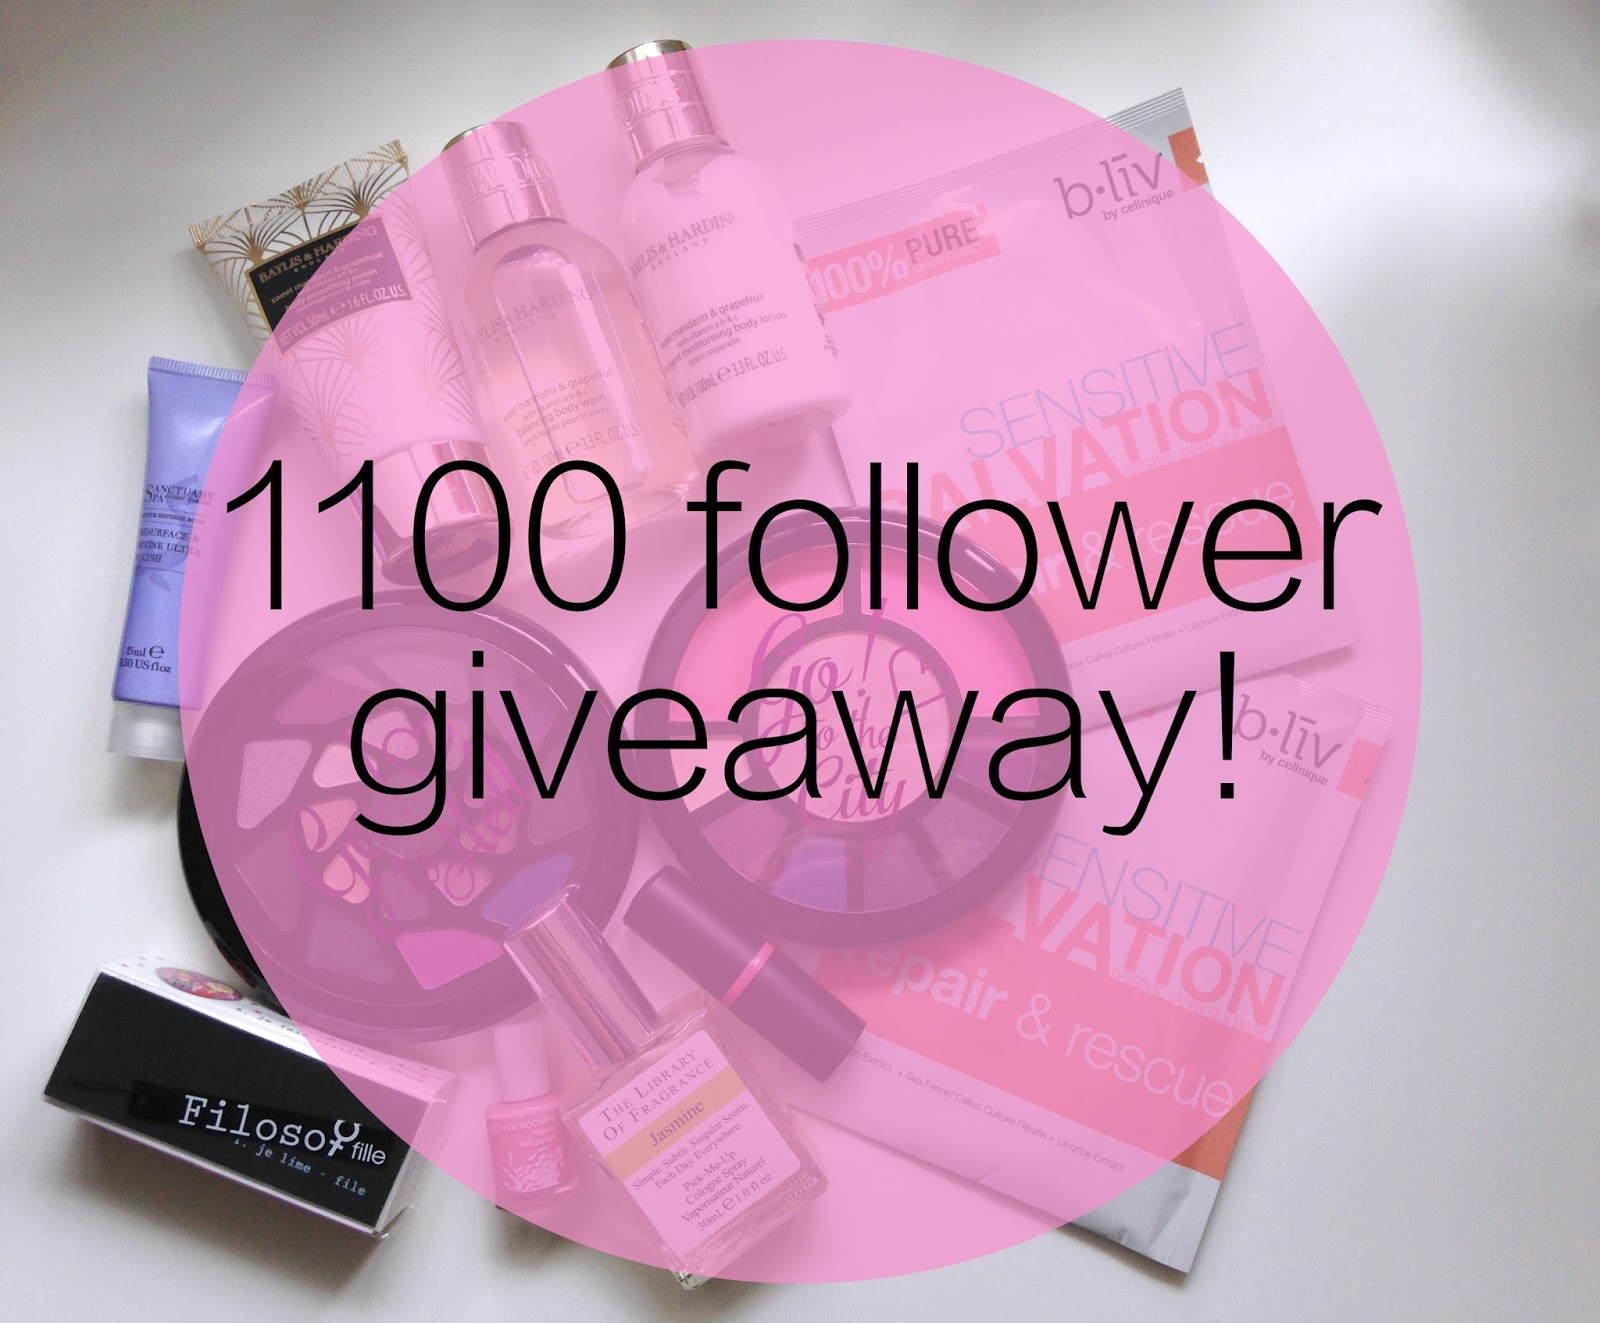 1100 follower giveaway!